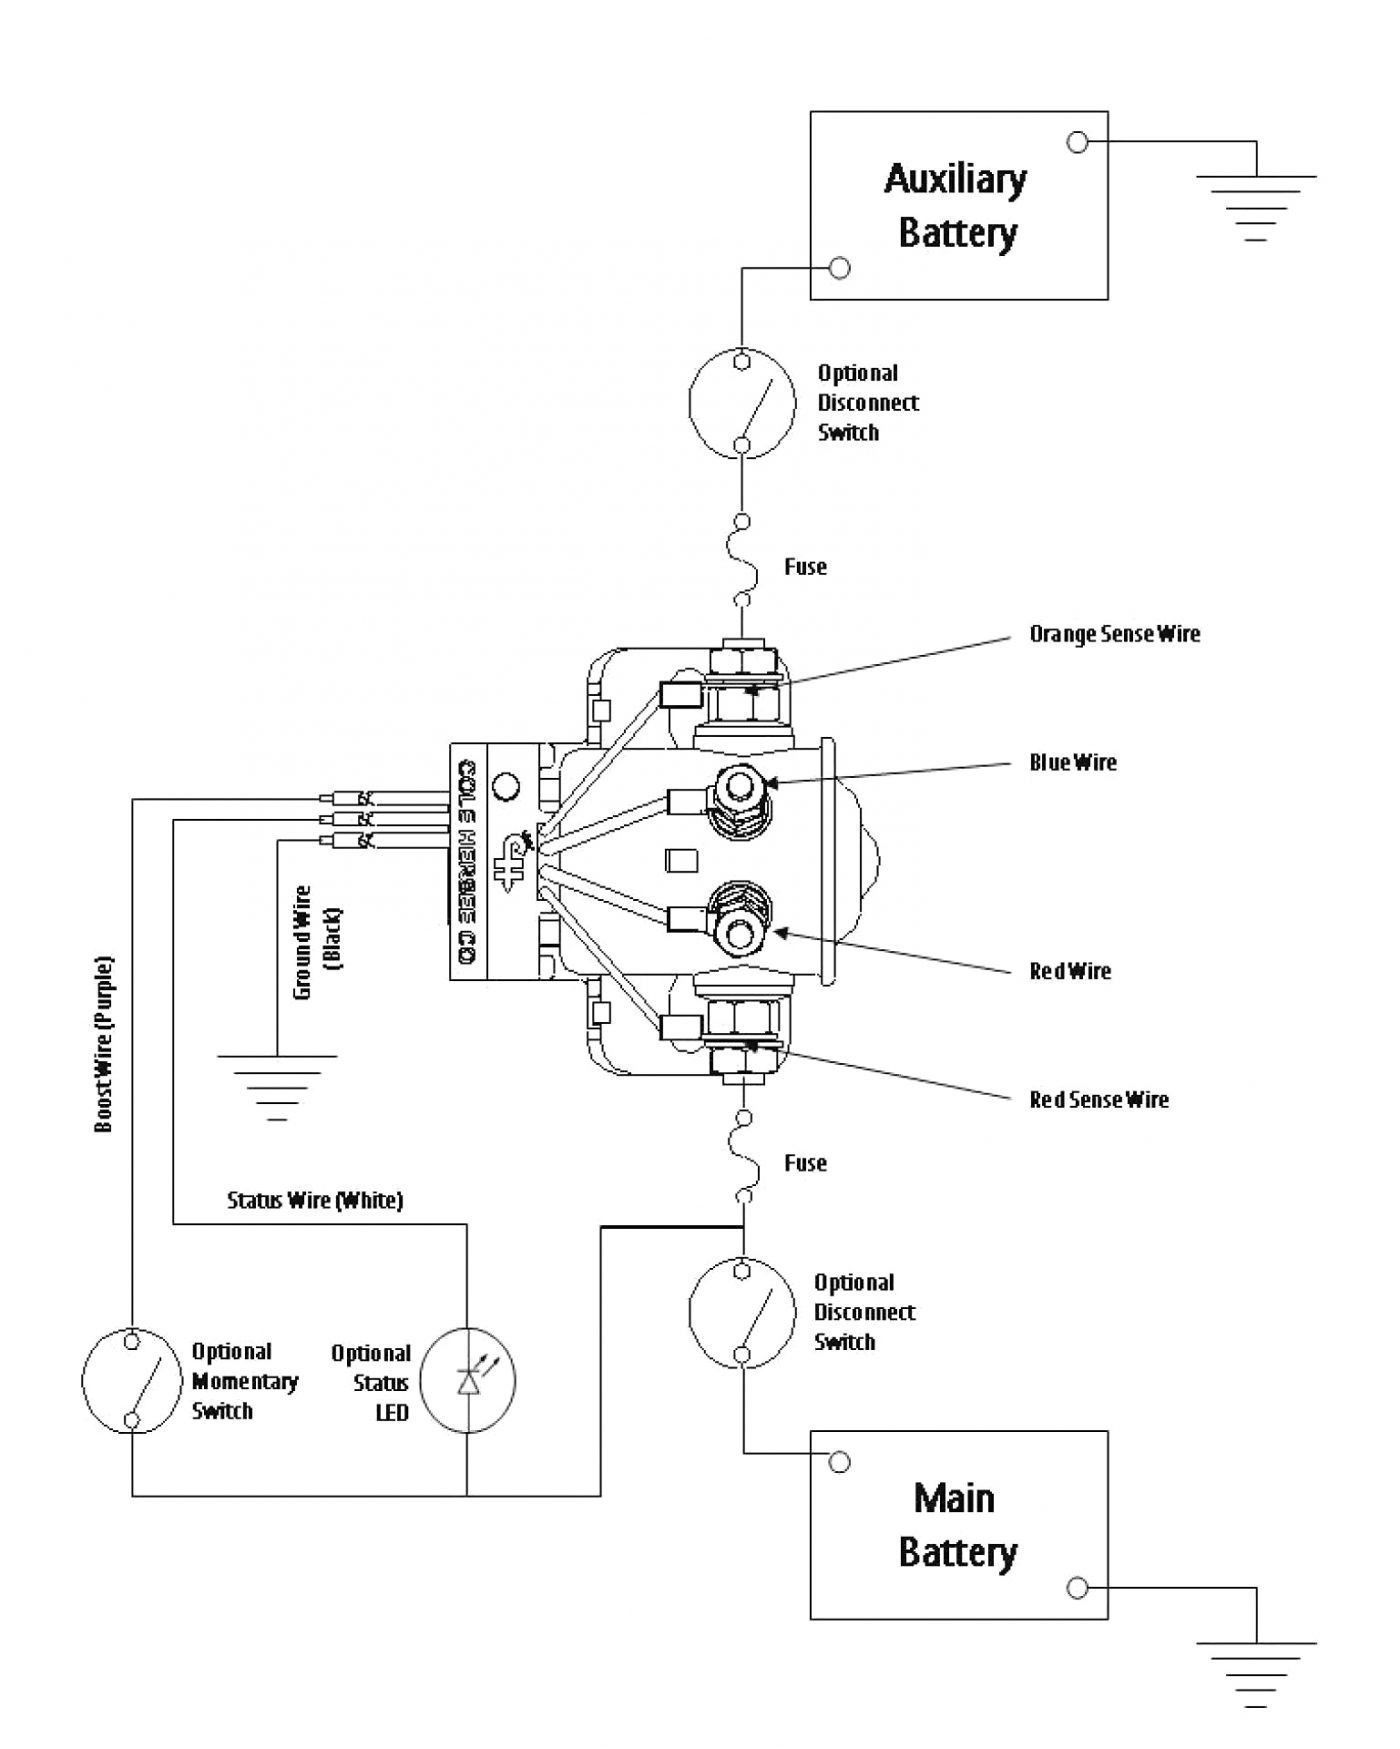 A132 1996 Ford Glow Plug Relay Wiring Diagram Wiring Resources